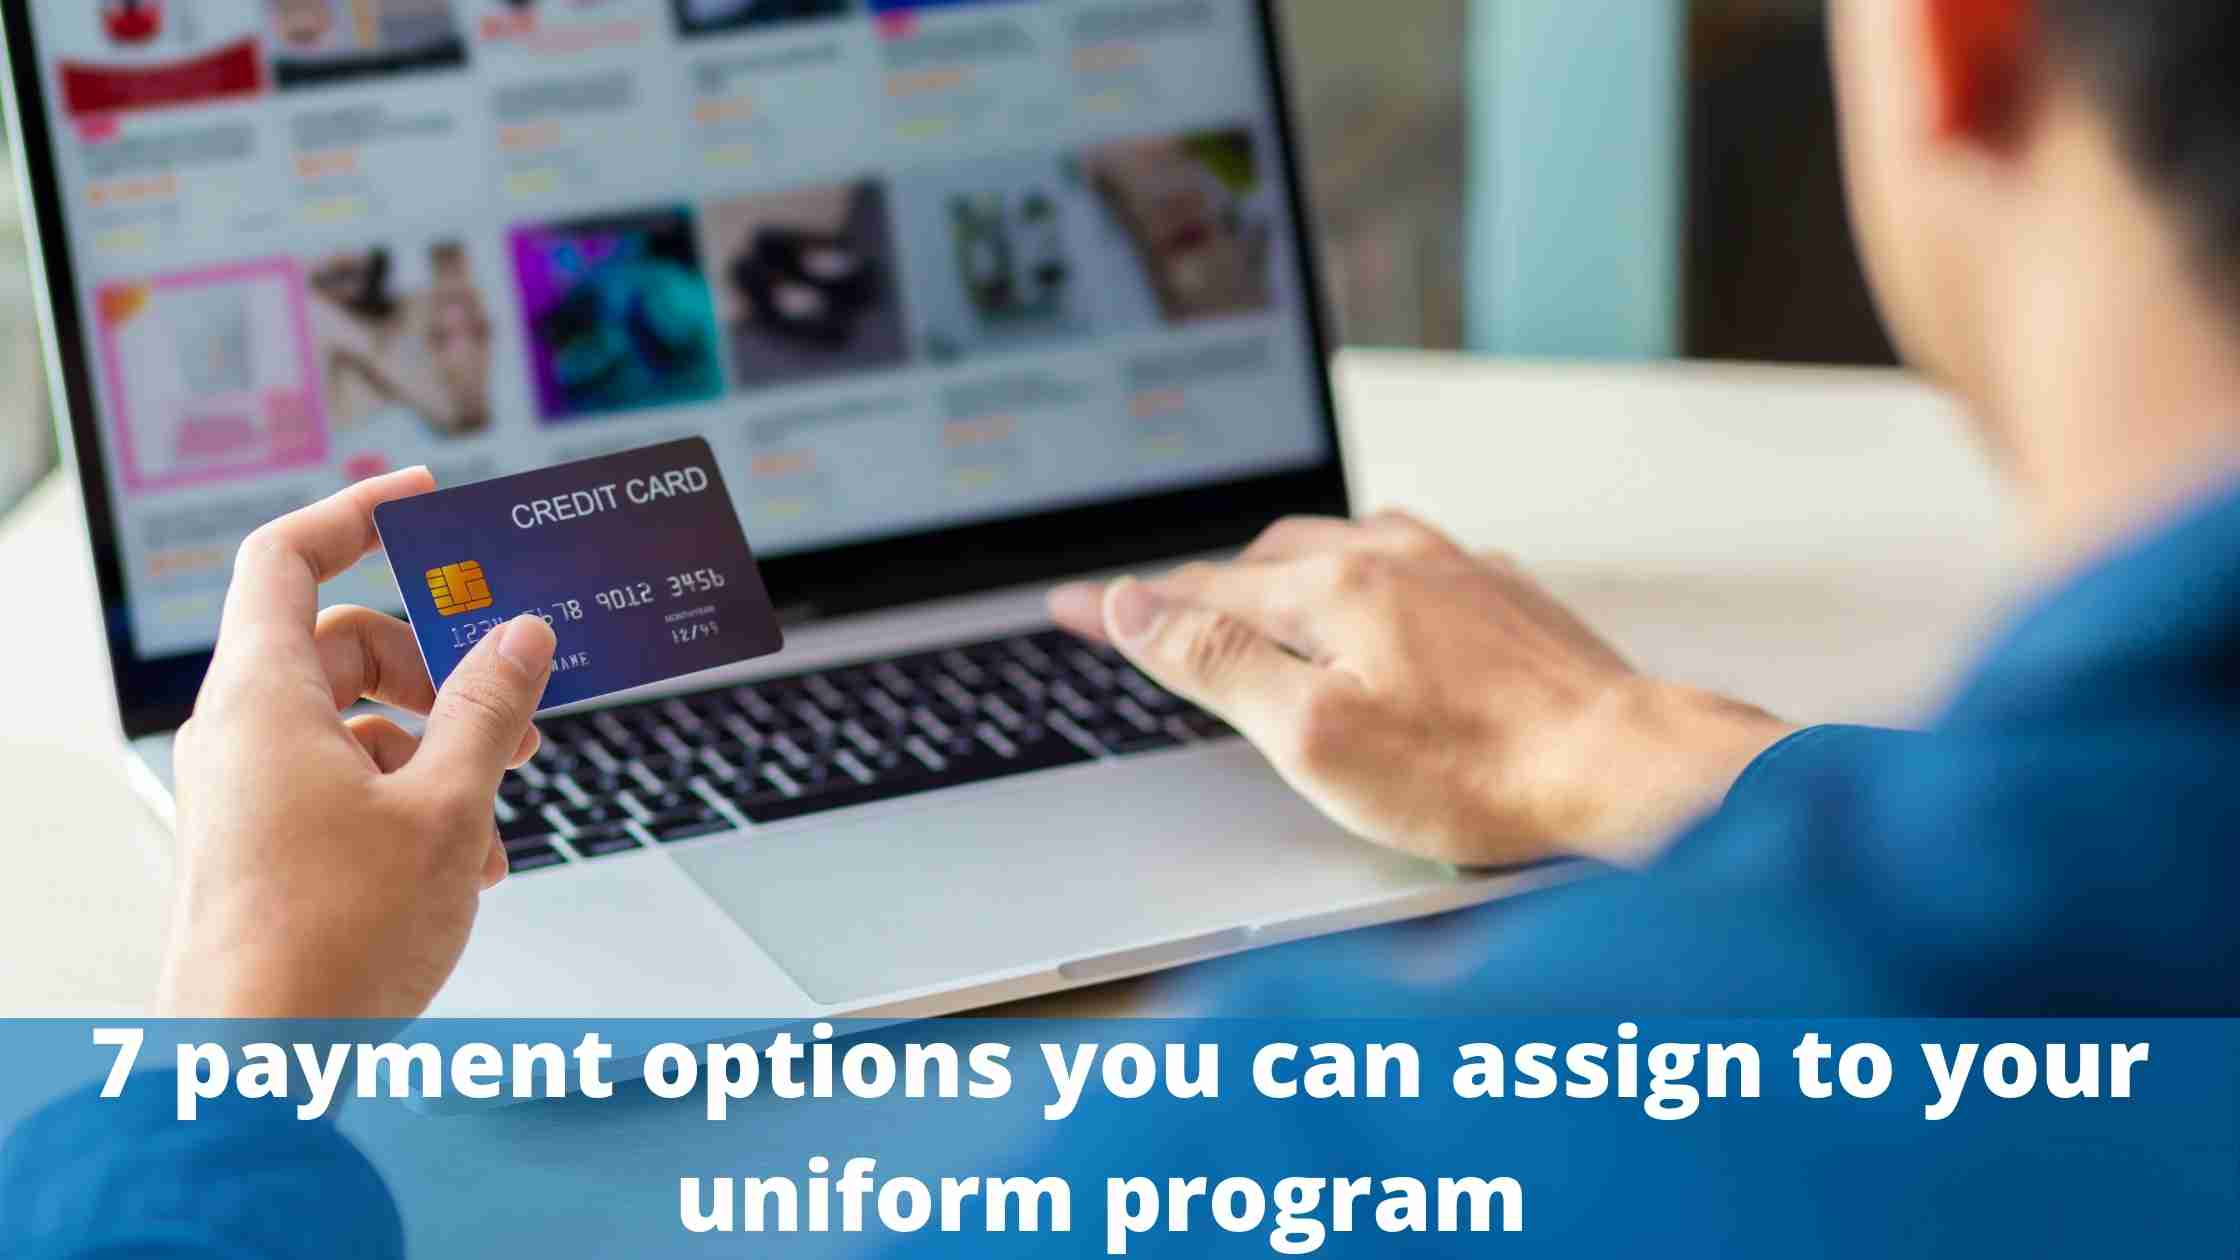 7 payment options you can assign to your uniform program